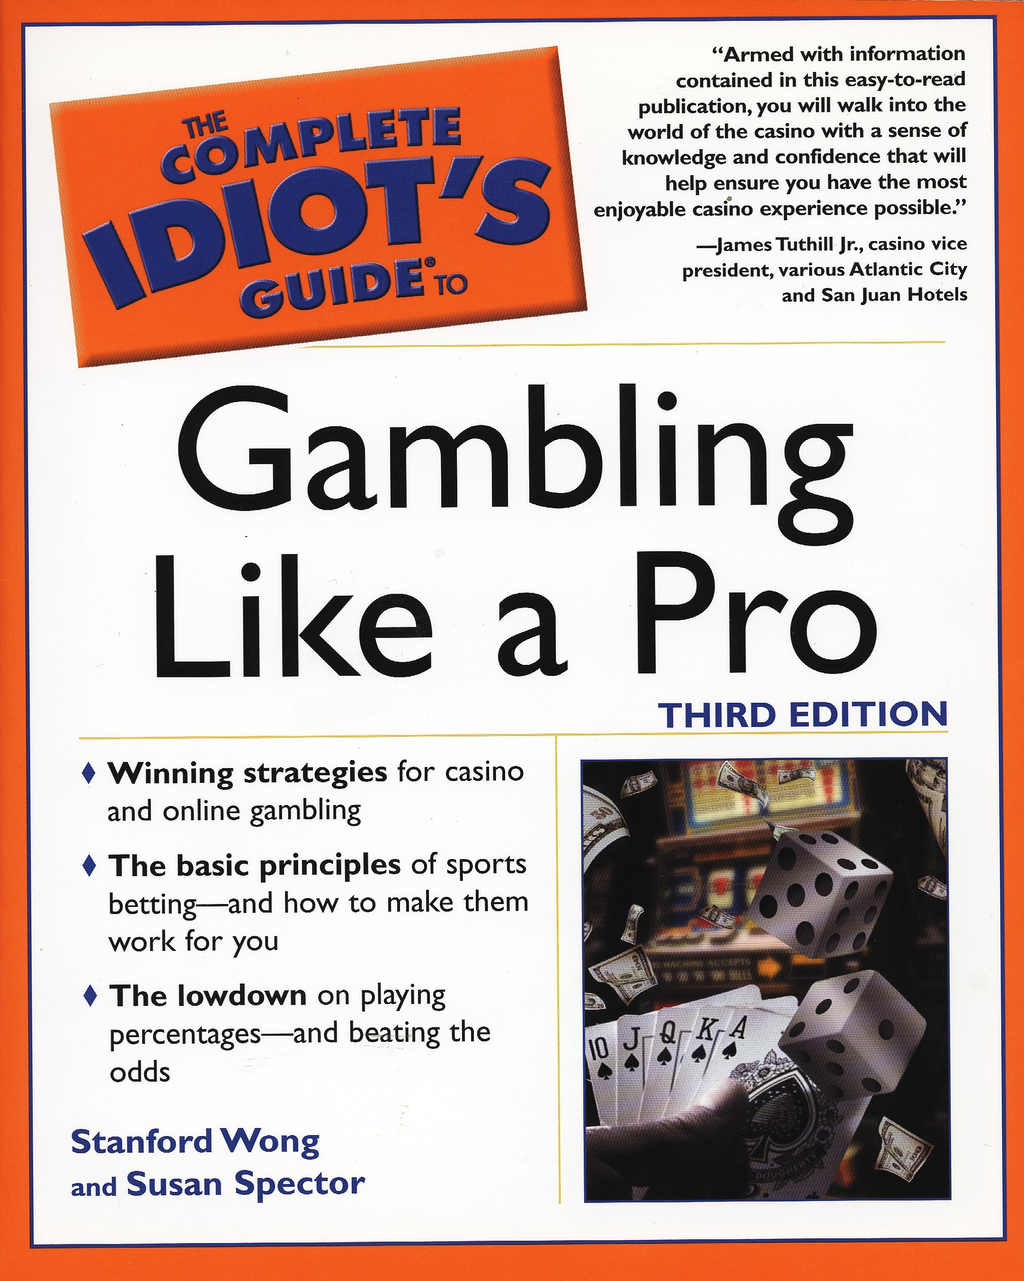 The Complete Idiot's Guide to Gambling Like a Pro By: Stanford Wong